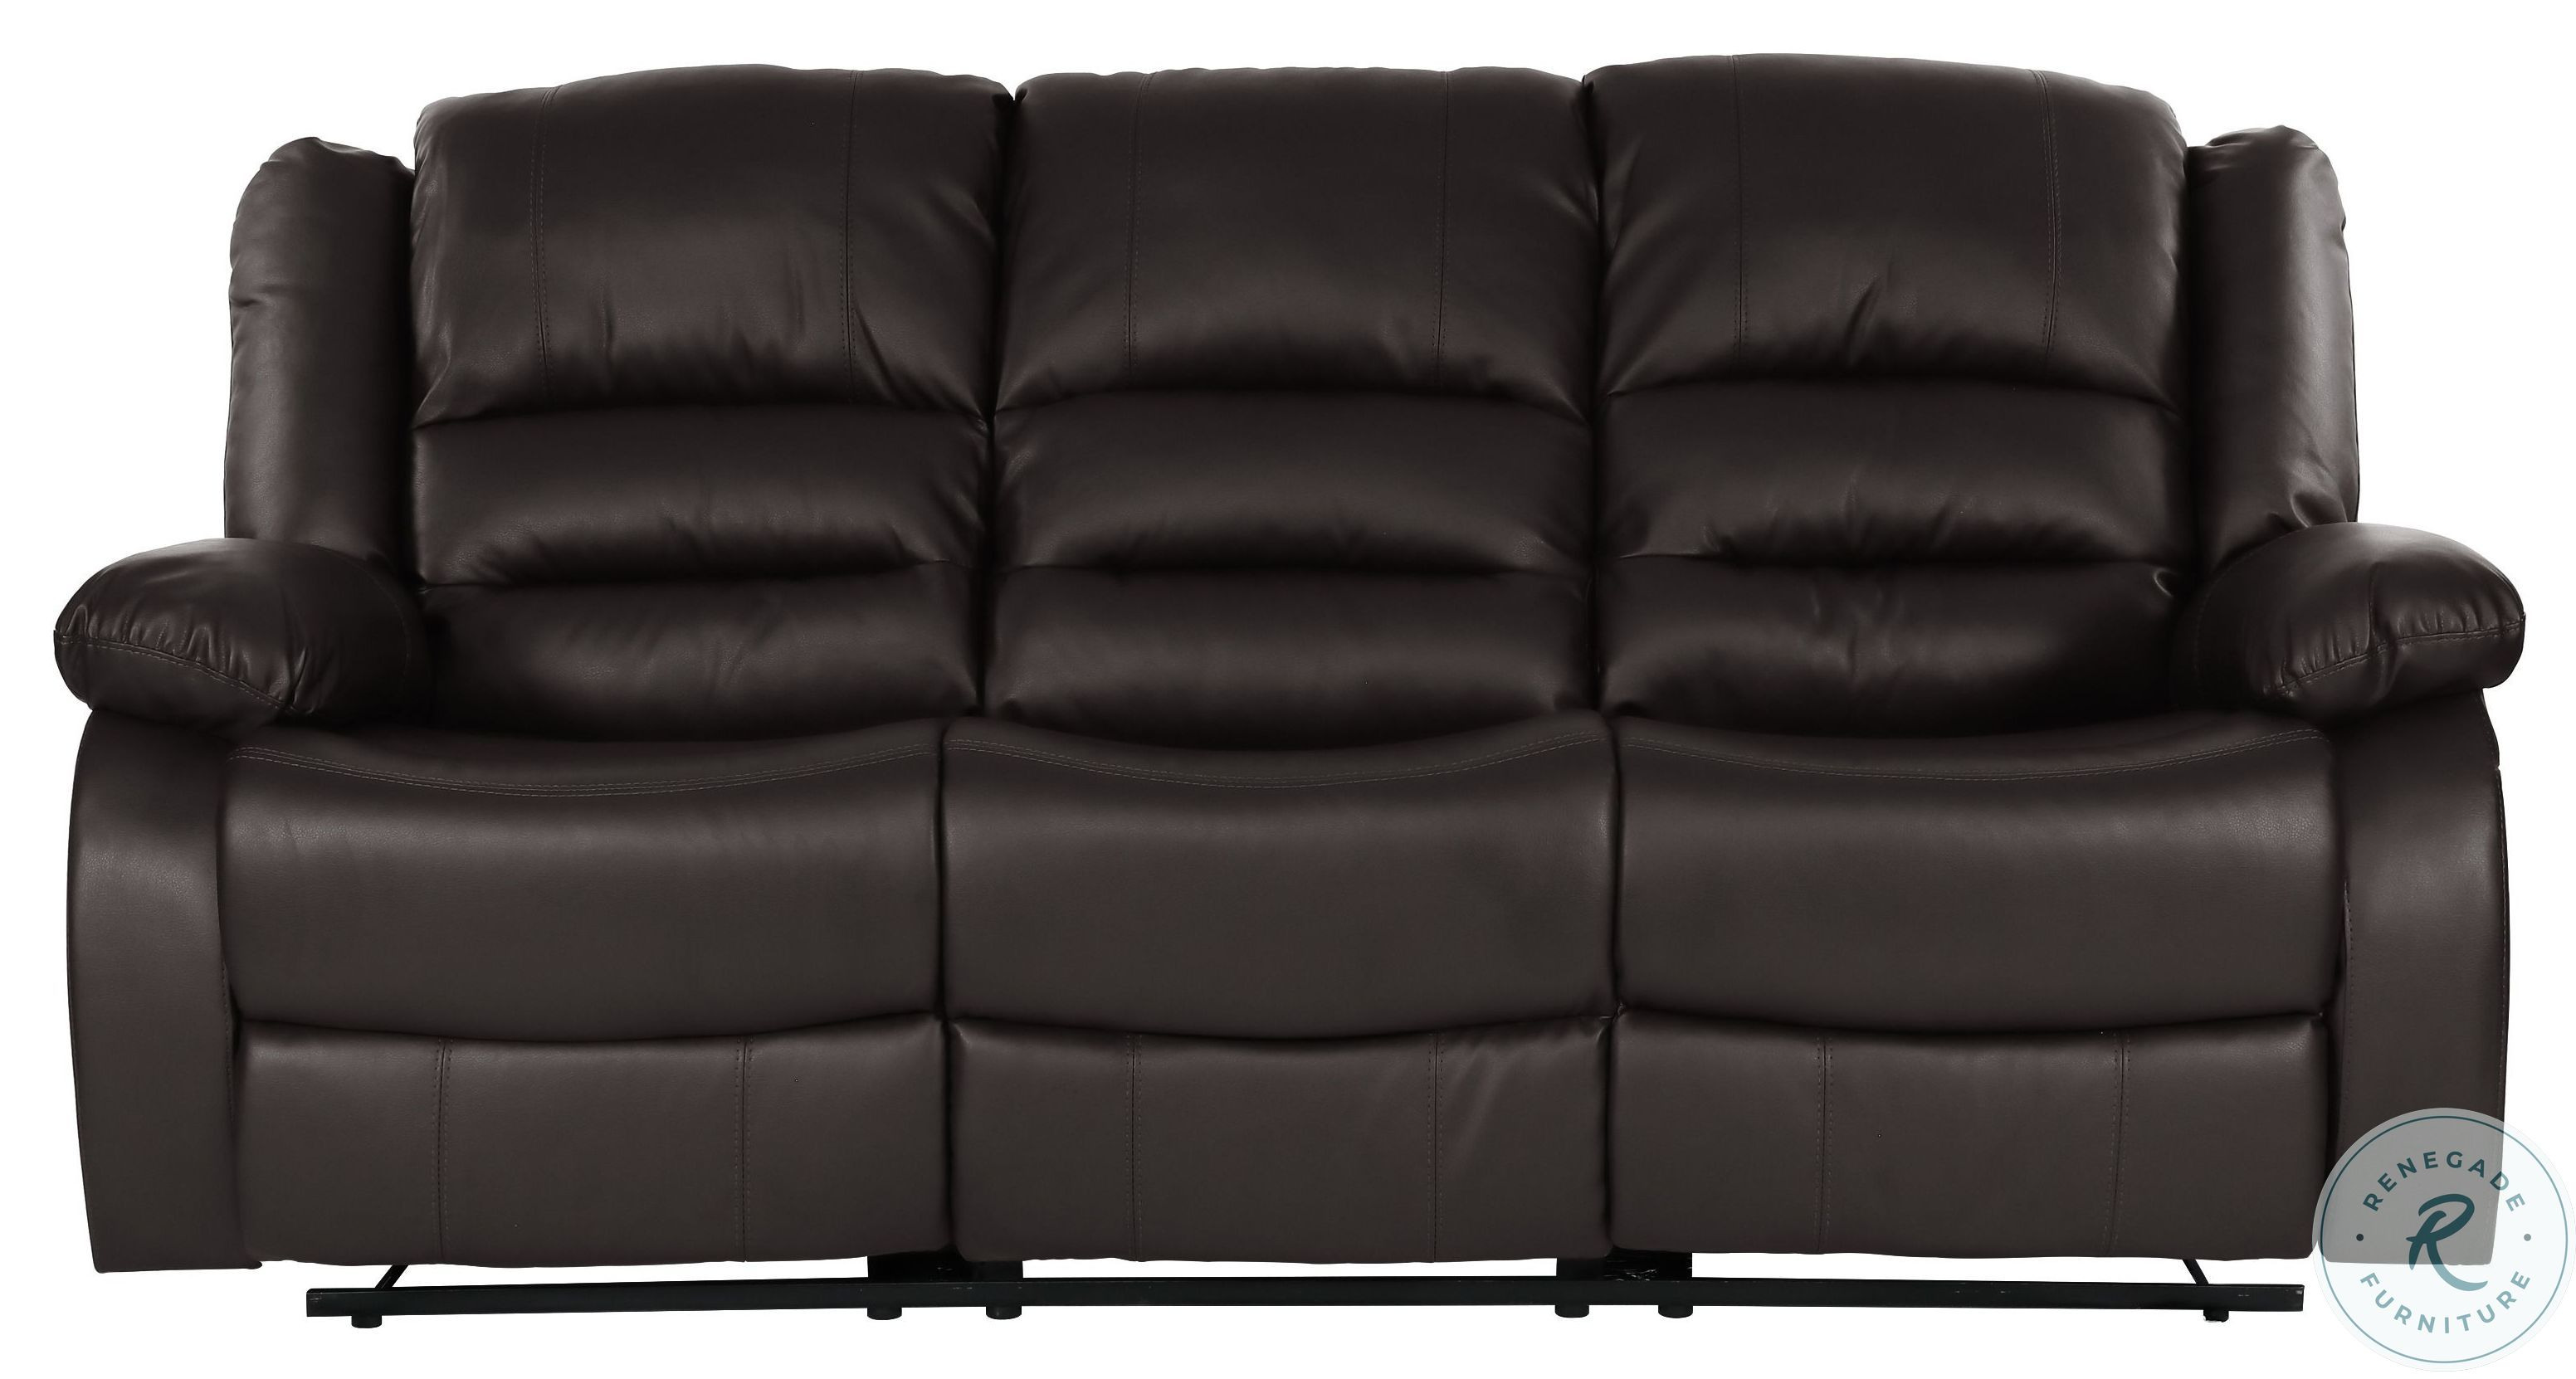 Poise Brown Leather Power Recliner Sofa With Power Headrest From Hooker Coleman Furniture